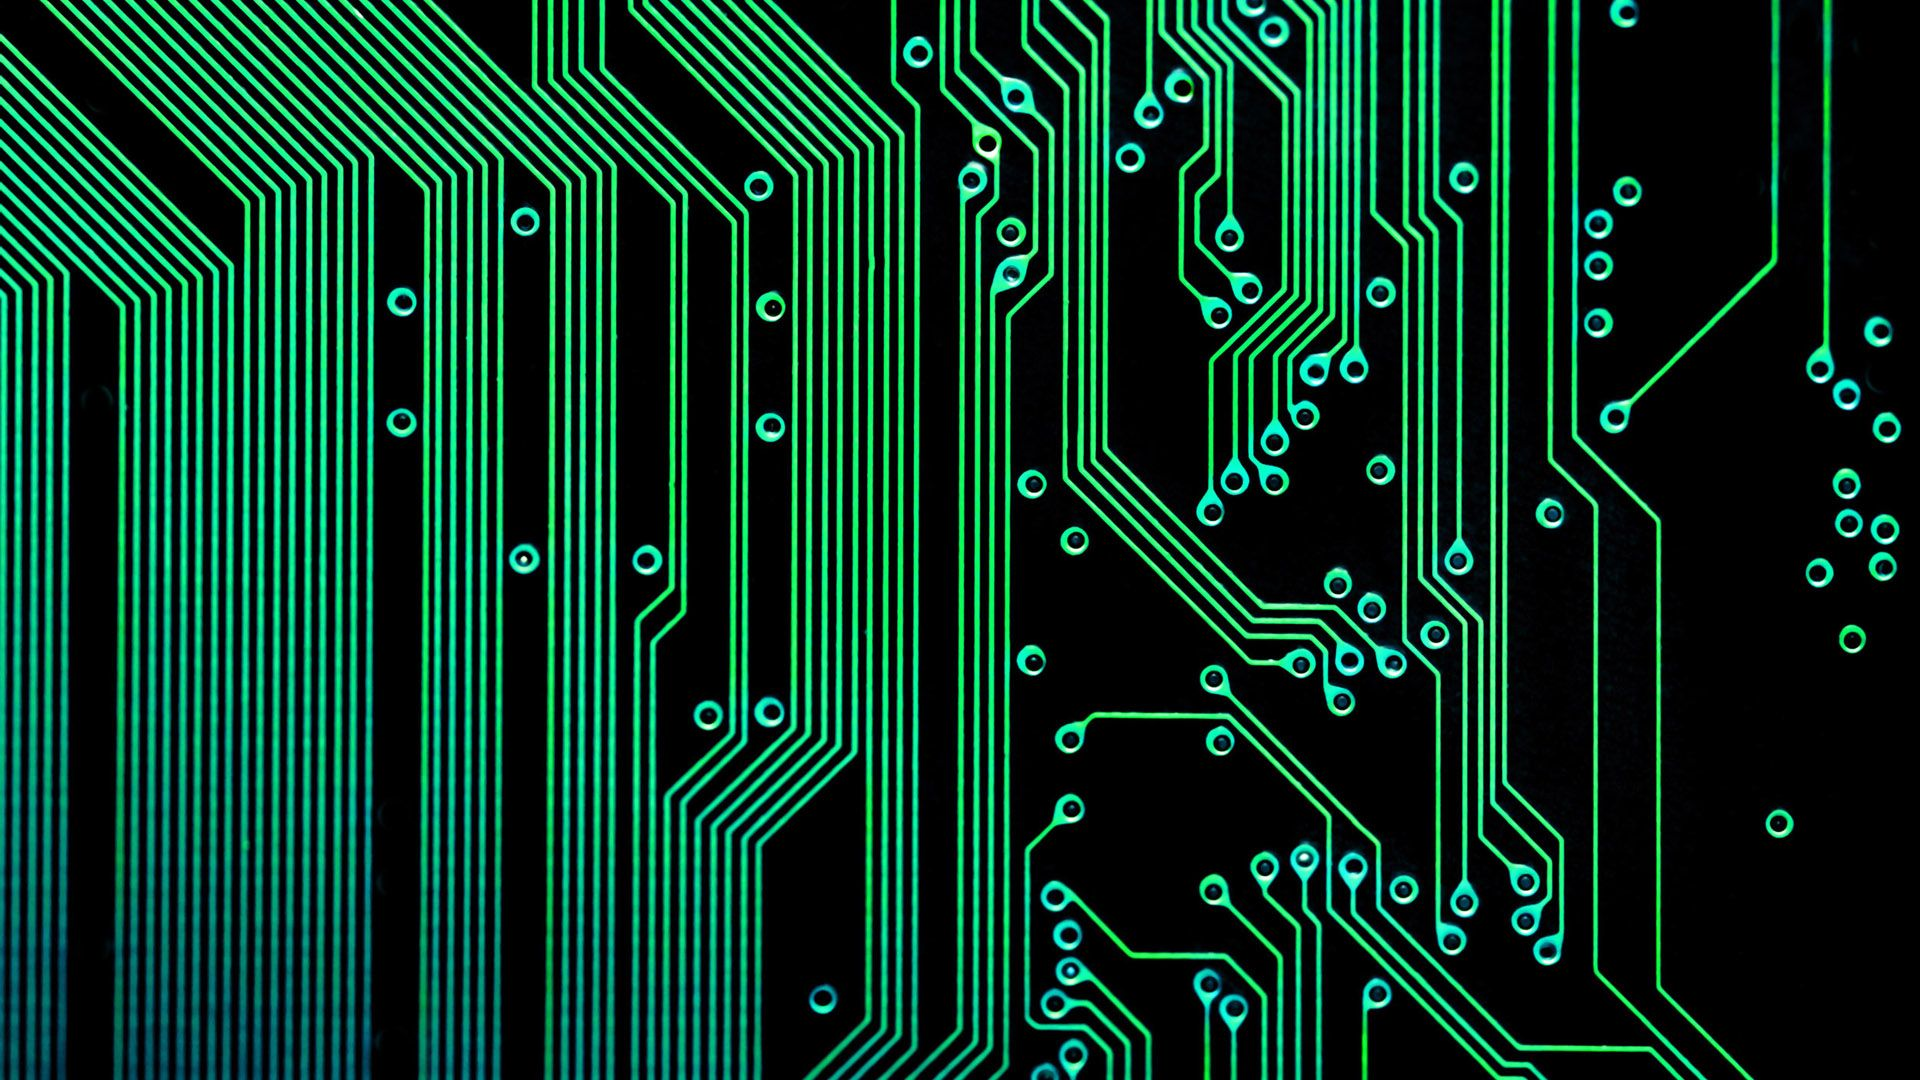 circuit board wallpaper google search tron tron